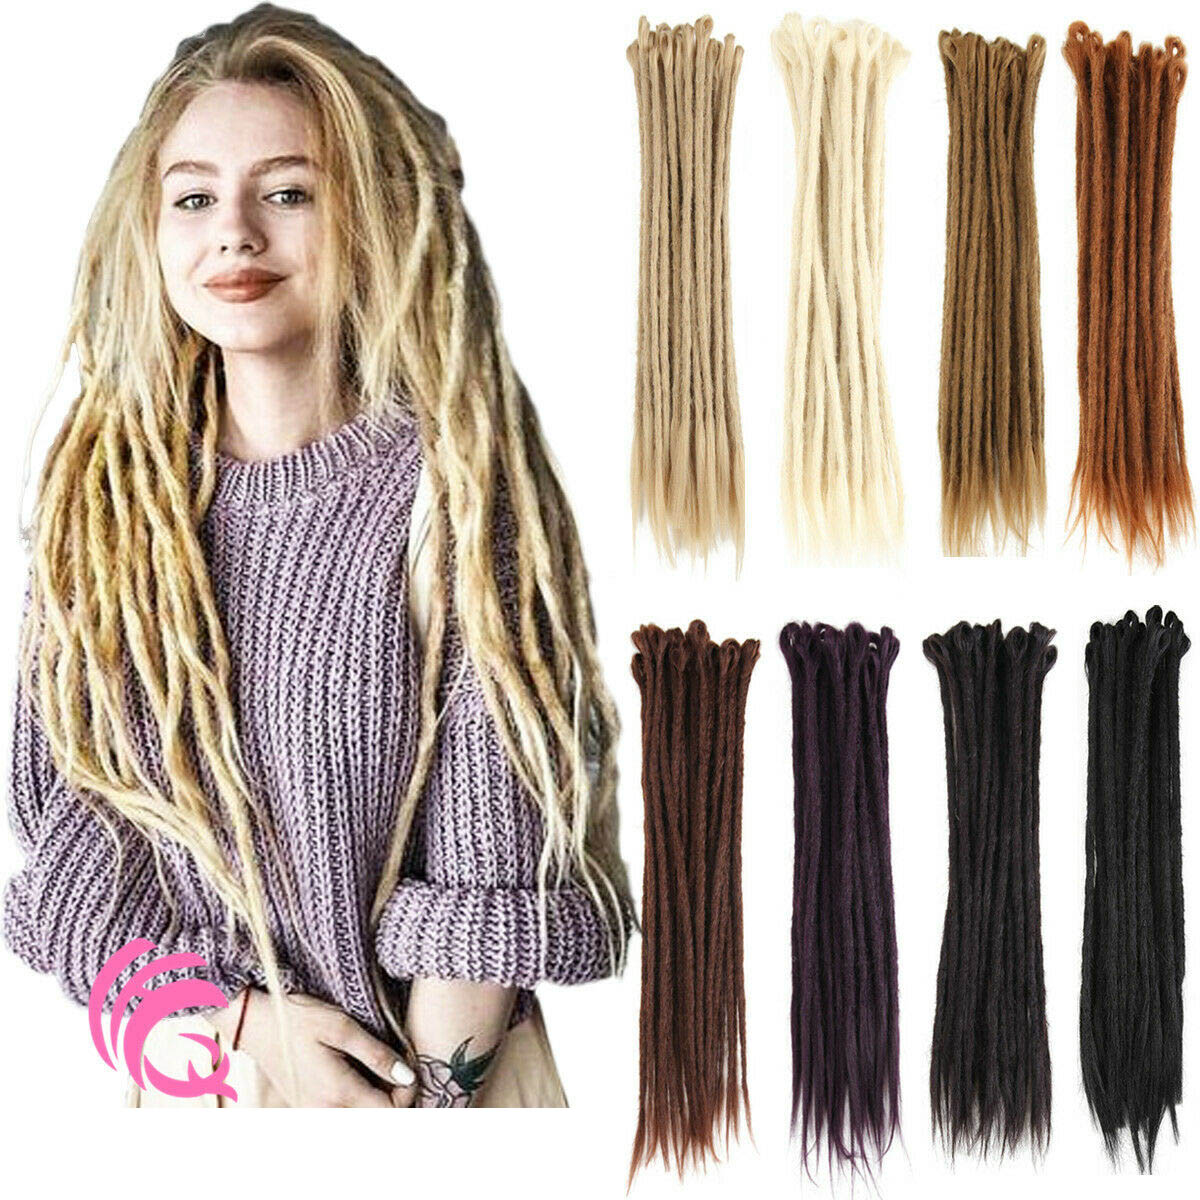 20pcs 20 Inch Handmade Dreadlocks Single Ended Locs Synthetic Dreads Hair Extensions 16